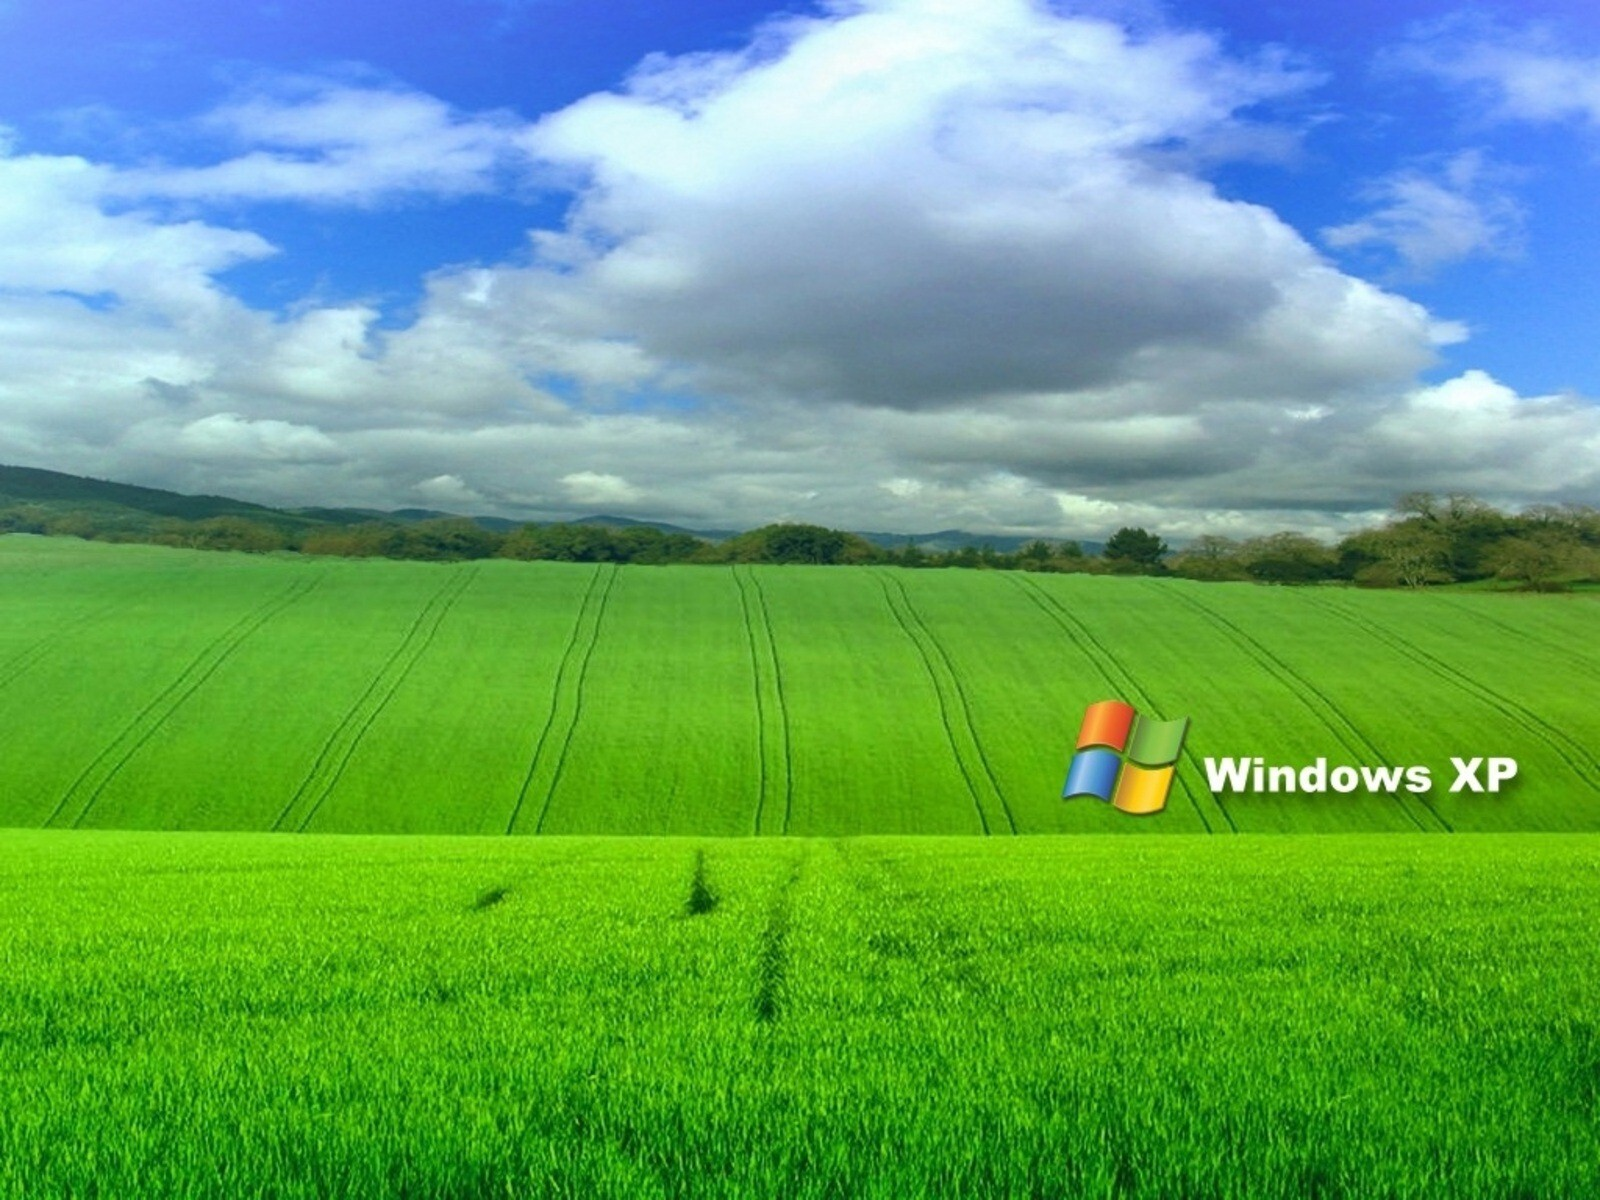 windows xp wallpaper | hd wallpapers